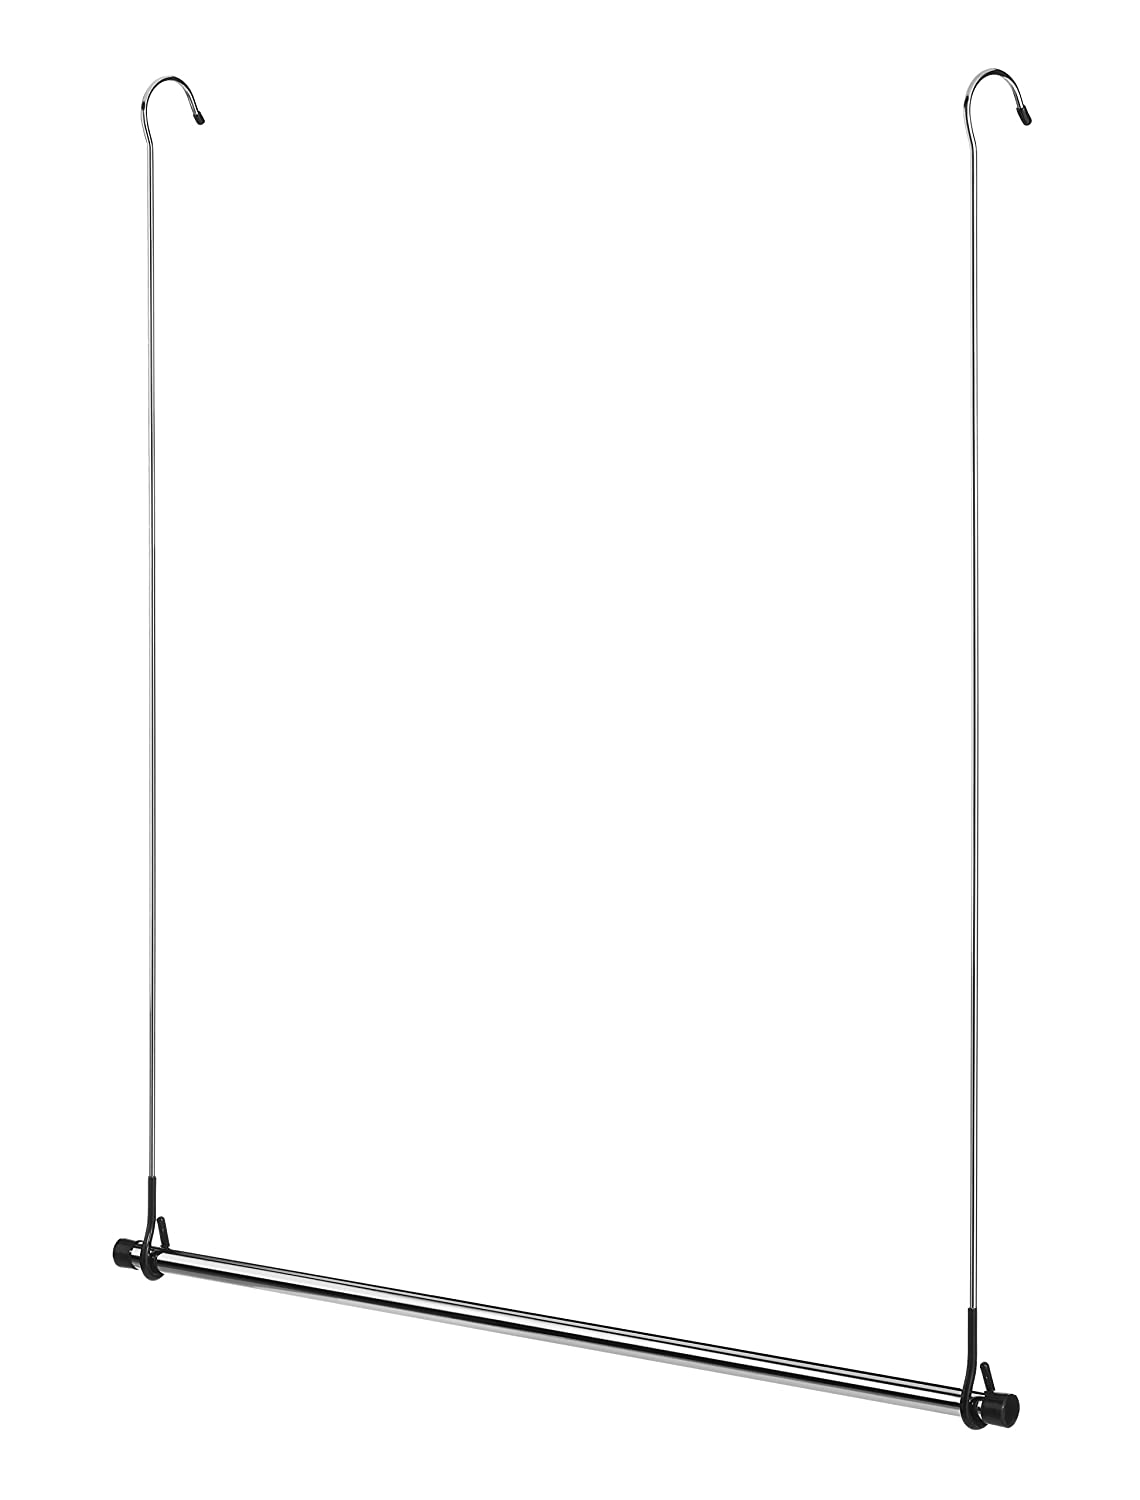 Whitmor Double Closet Rod - Heavy Duty Closet Organizer- Chrome